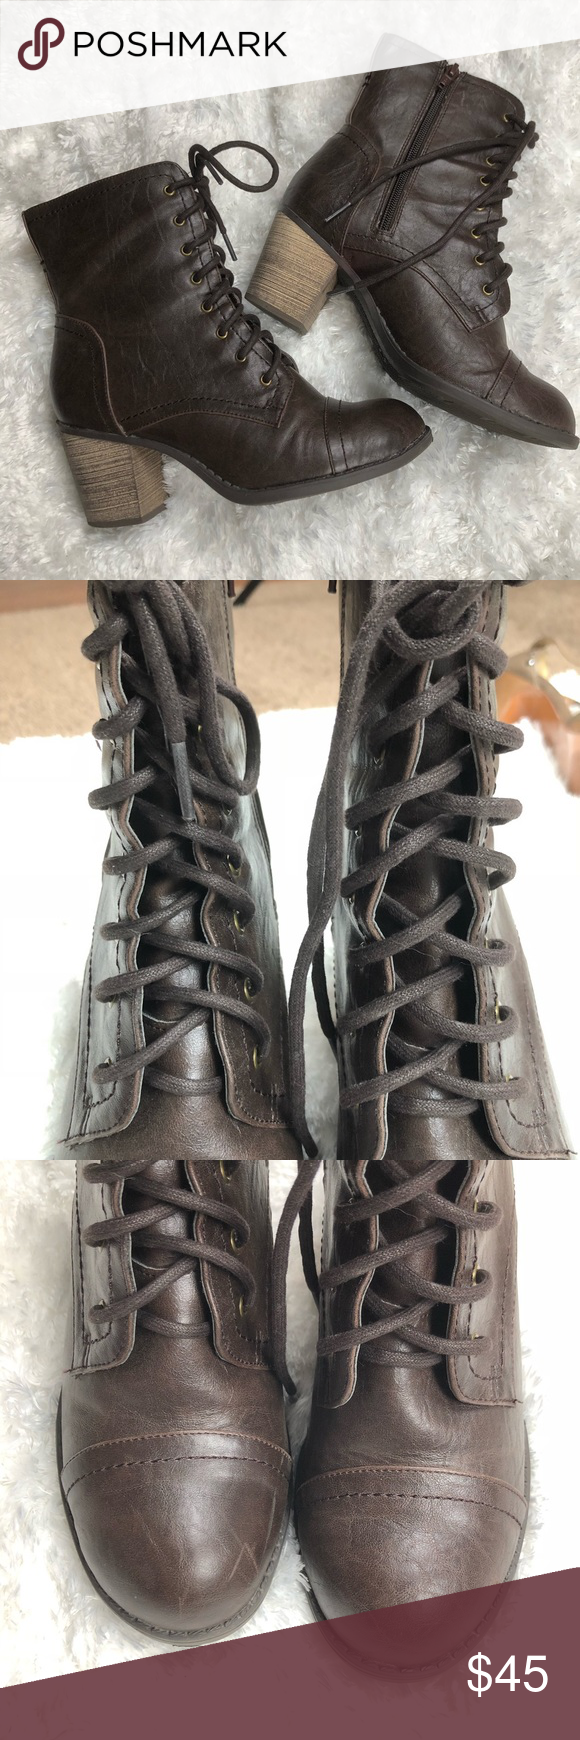 93841caec1 Diba | Heeled combat boots brown size 7.5 •Good condition, flaws shown in  pictures •Lace-up combat boots •3 inch heel Diba Shoes Heeled Boots